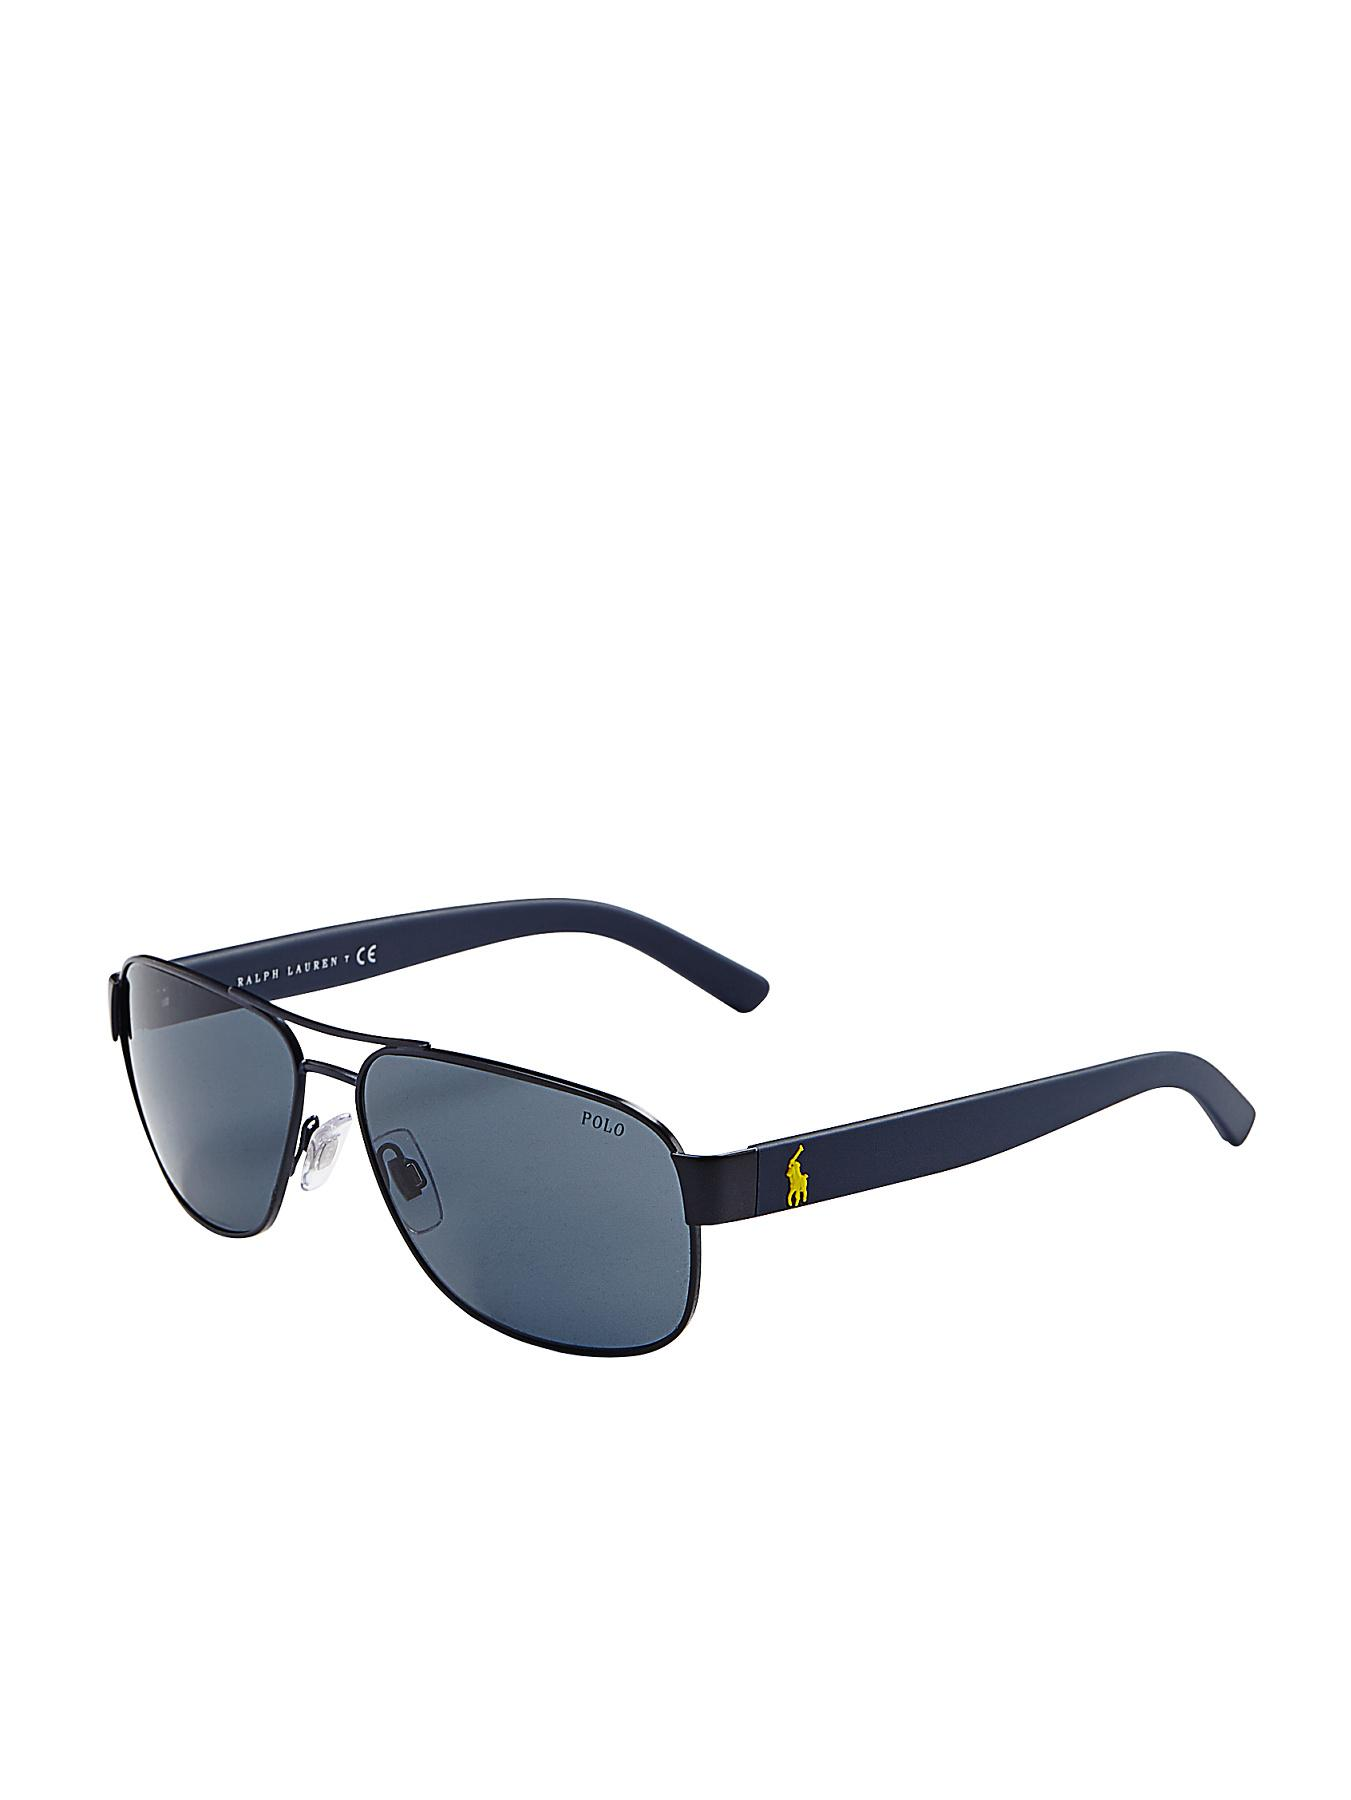 Polo Ralph Lauren Sunglasses - Blue - Blue, Blue